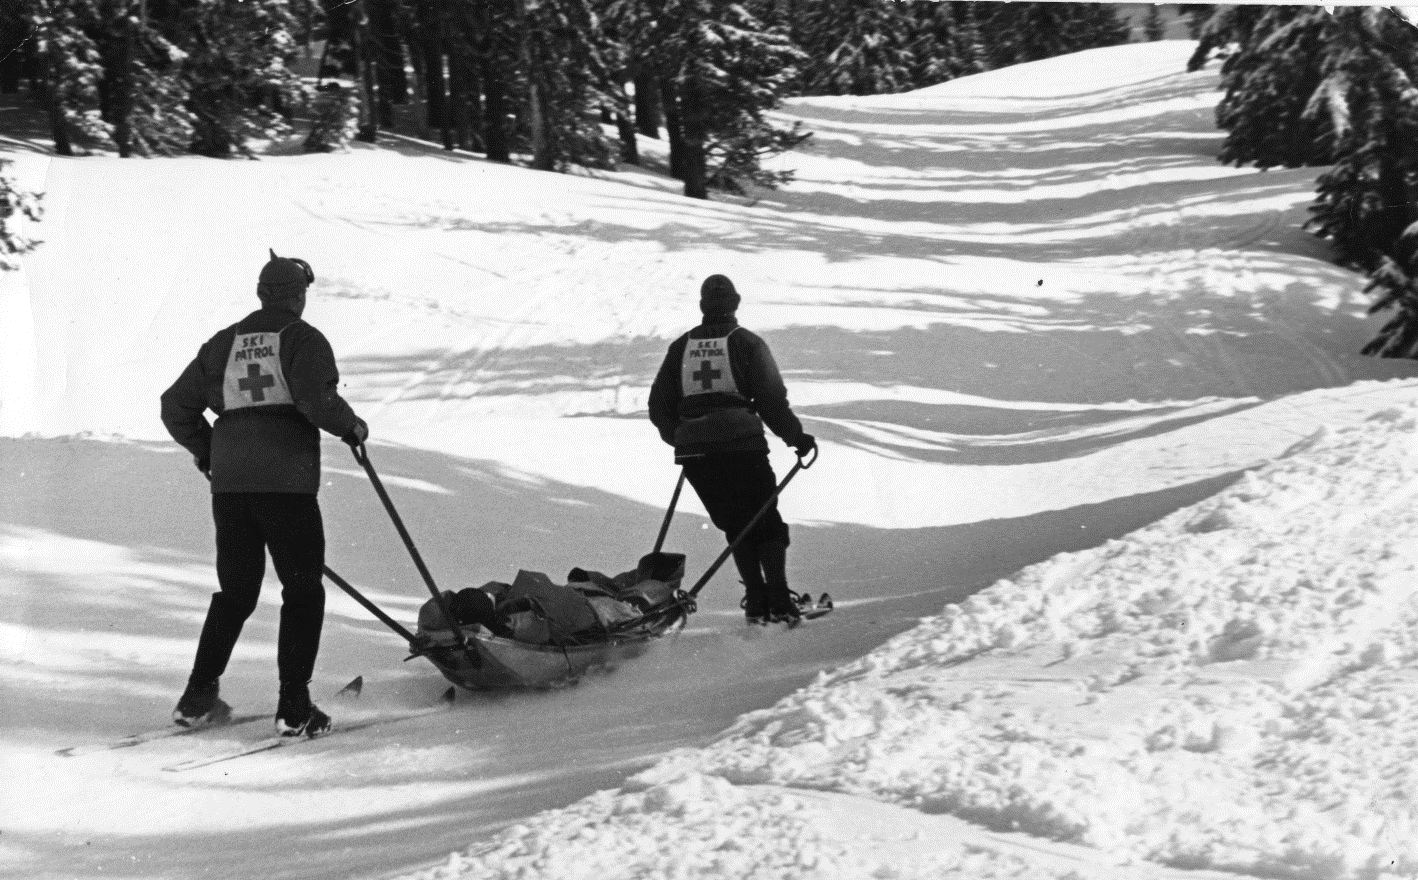 Two ski patrol members carrying a member of the public down for their safety